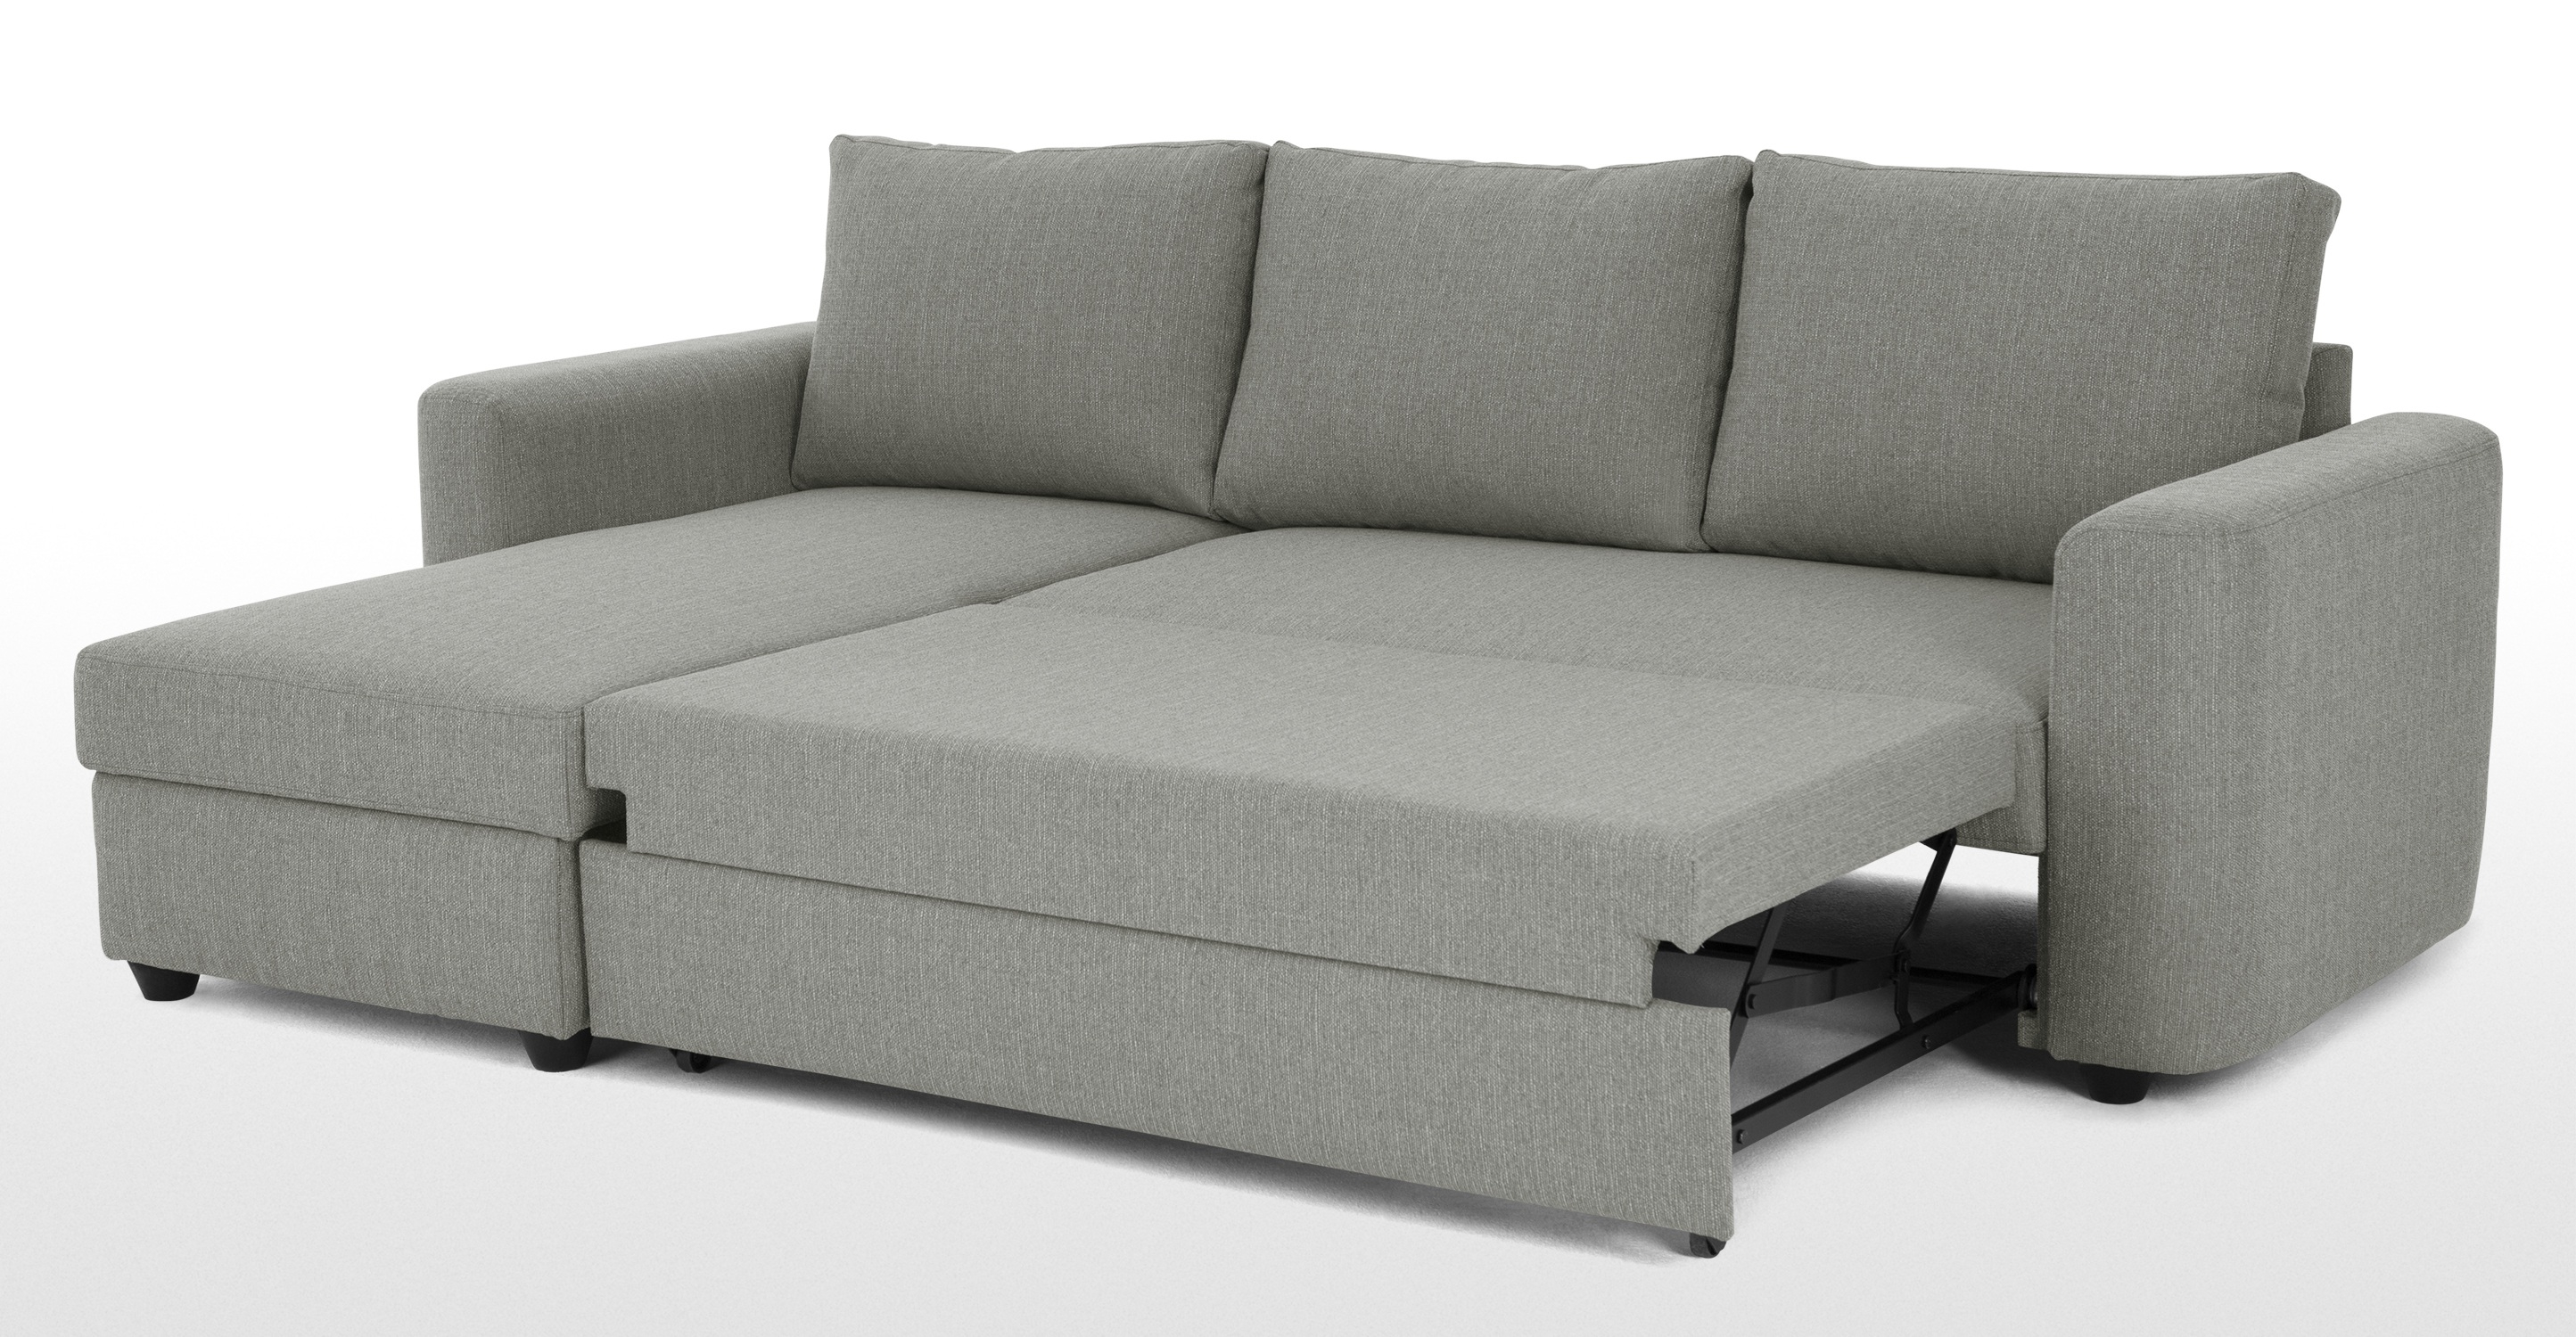 Sofas Center 38 Formidable Corner Sofa Bed Picture Ideas Corner Throughout Cheap Corner Sofa Beds (Image 14 of 15)